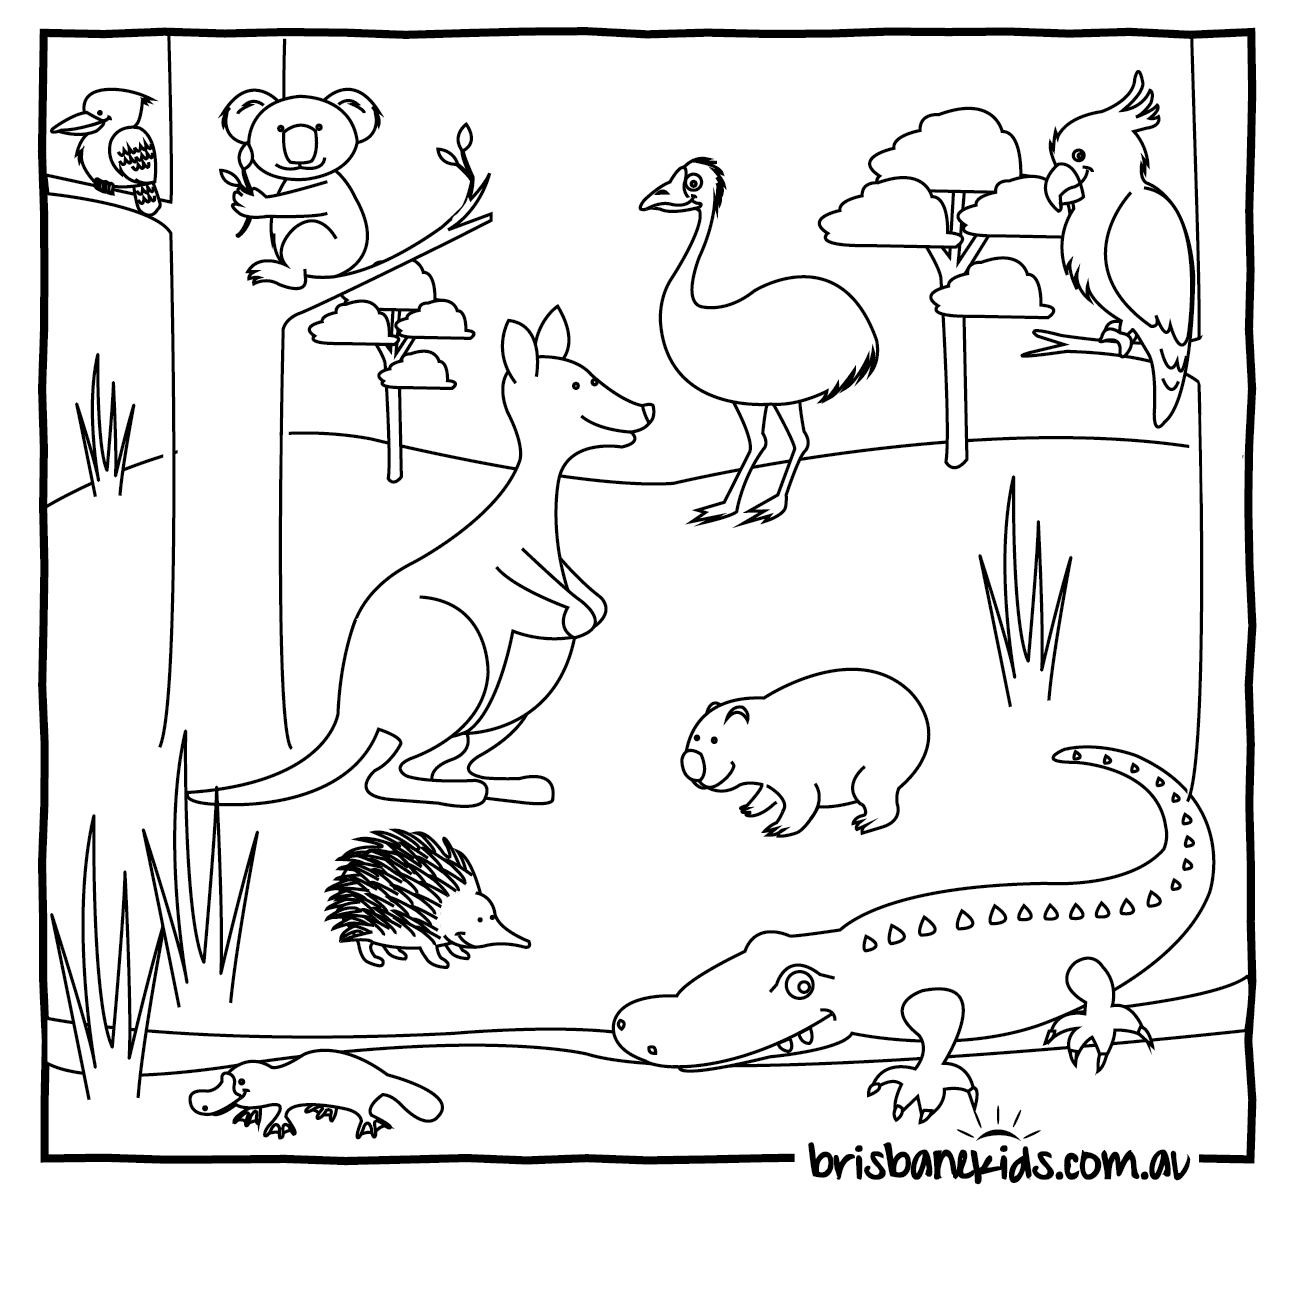 Australian Animals Colouring Pages | Coloring Pages of all ages ...